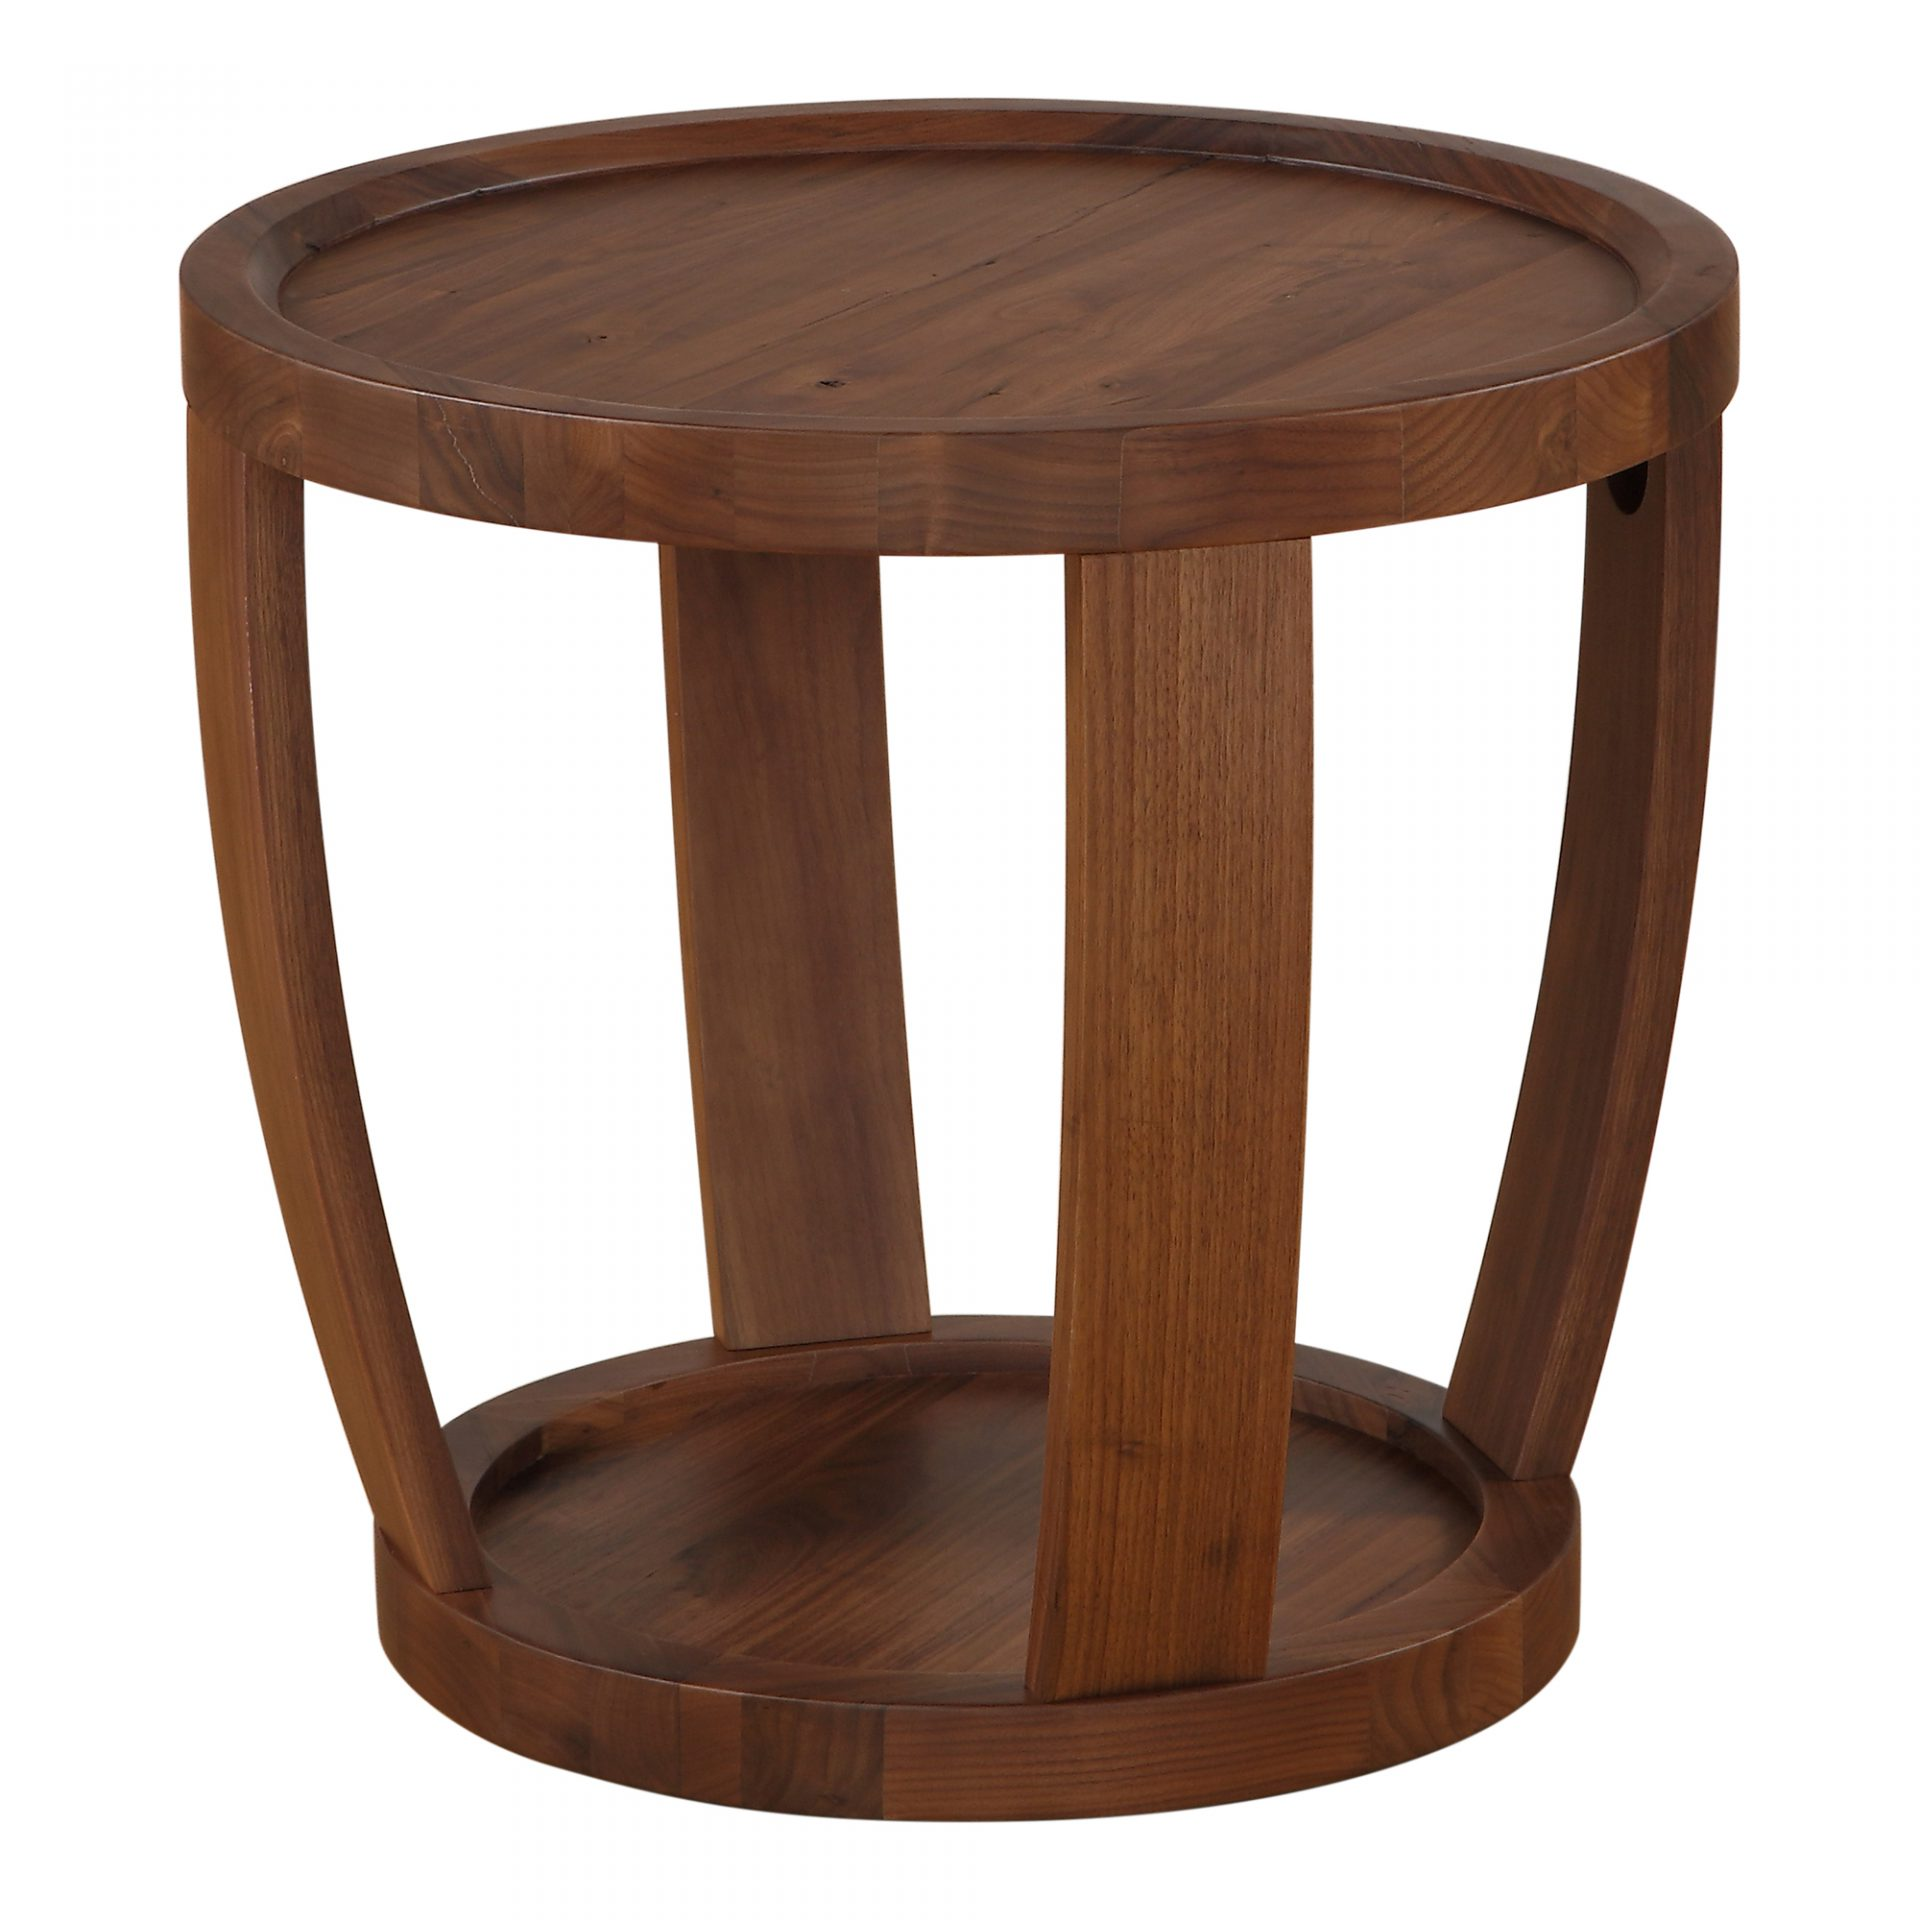 home goods accent tables the fantastic real round log end table target reclaimed wood coffee diy allen dining country leather living room sets kohls offer codes ikea malm